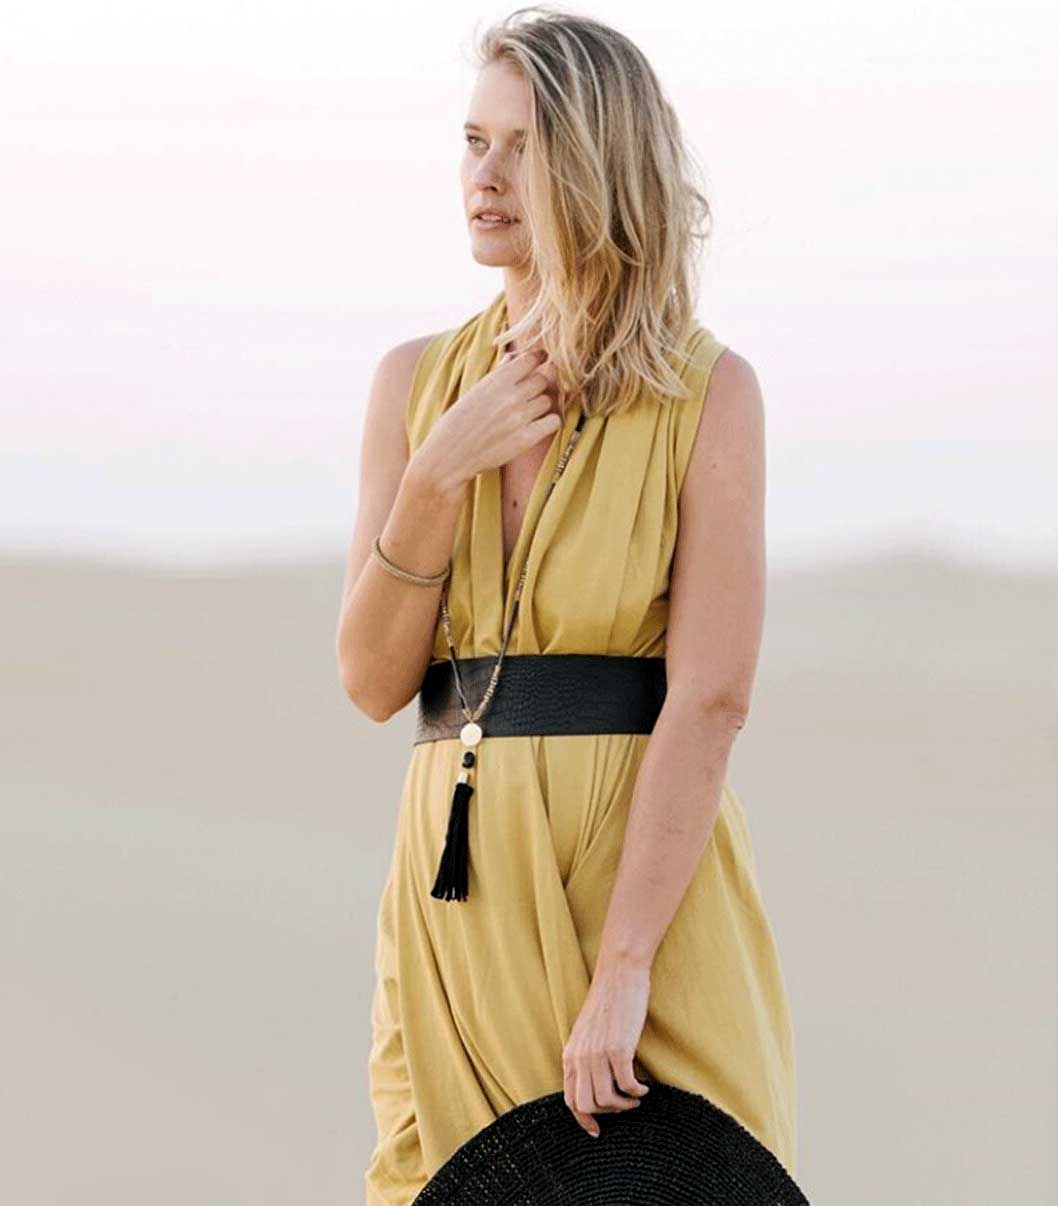 Designer Dubai Labels Phemke Beach and Resort wear sustainable